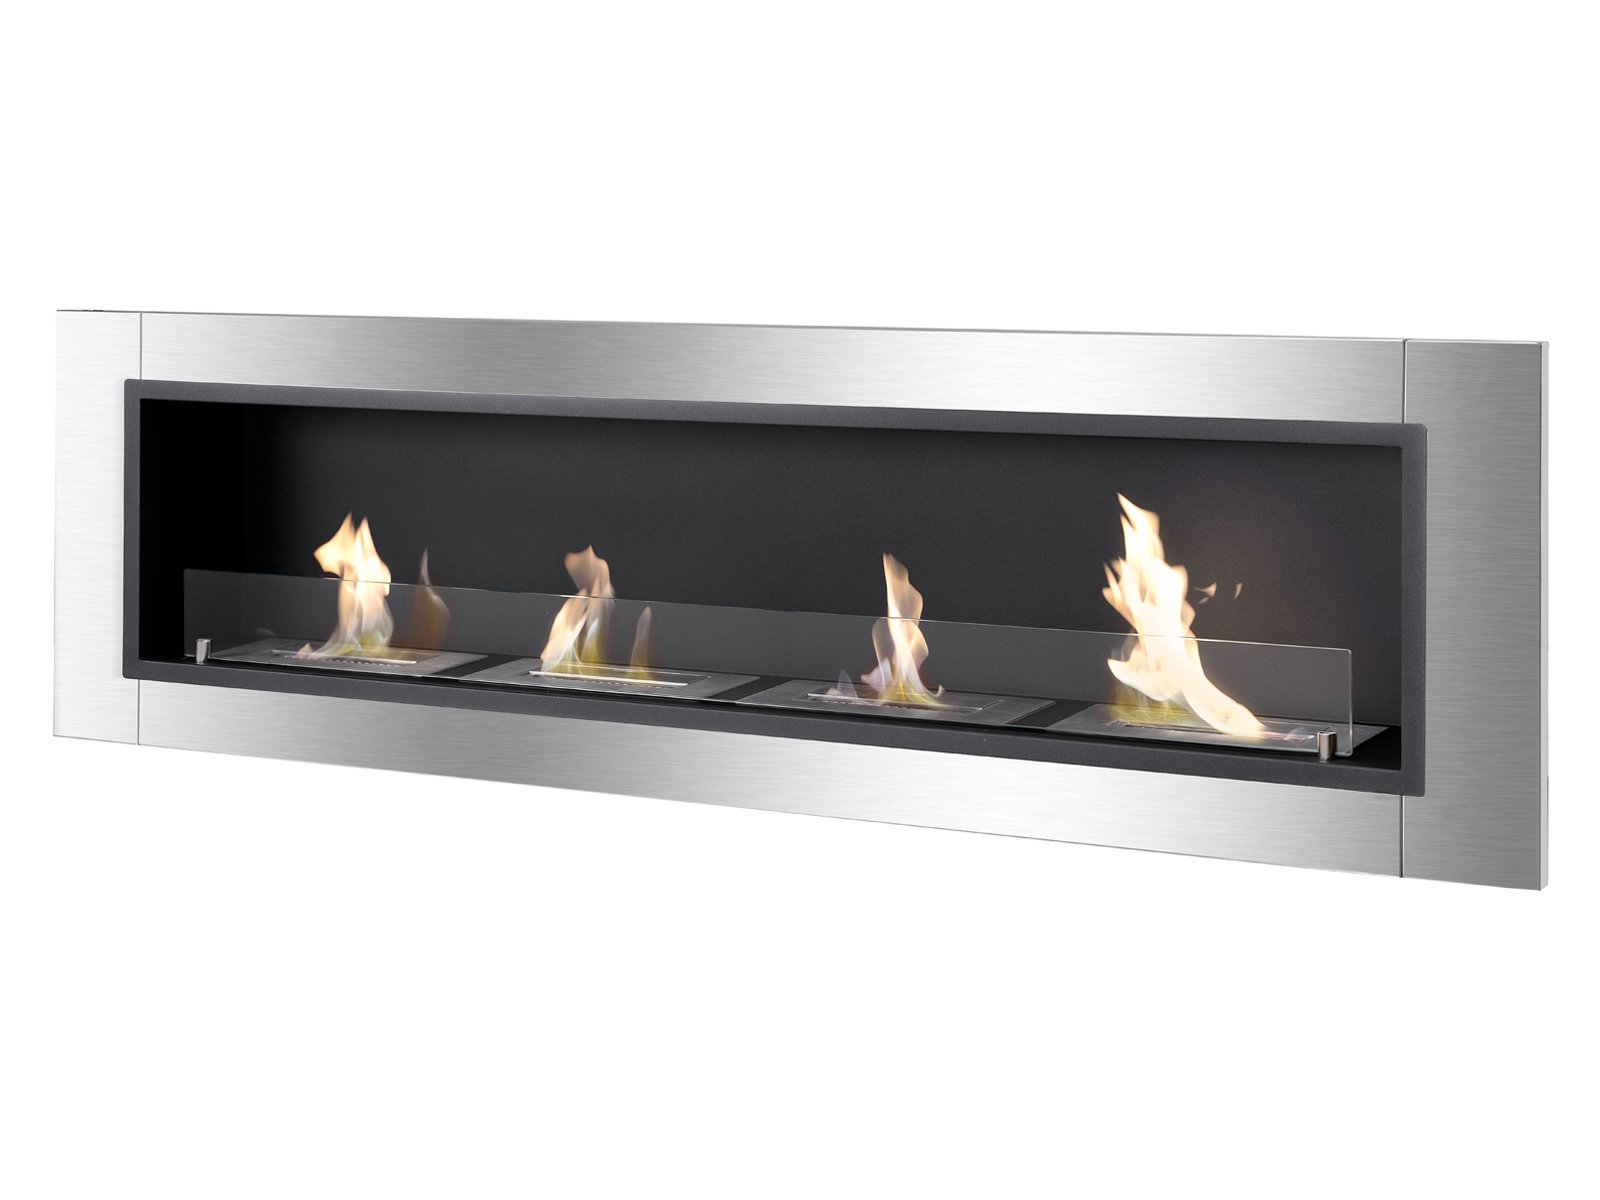 Ignis Ventless Bio Ethanol Fireplace Accalia with Safety Glass by Ignis